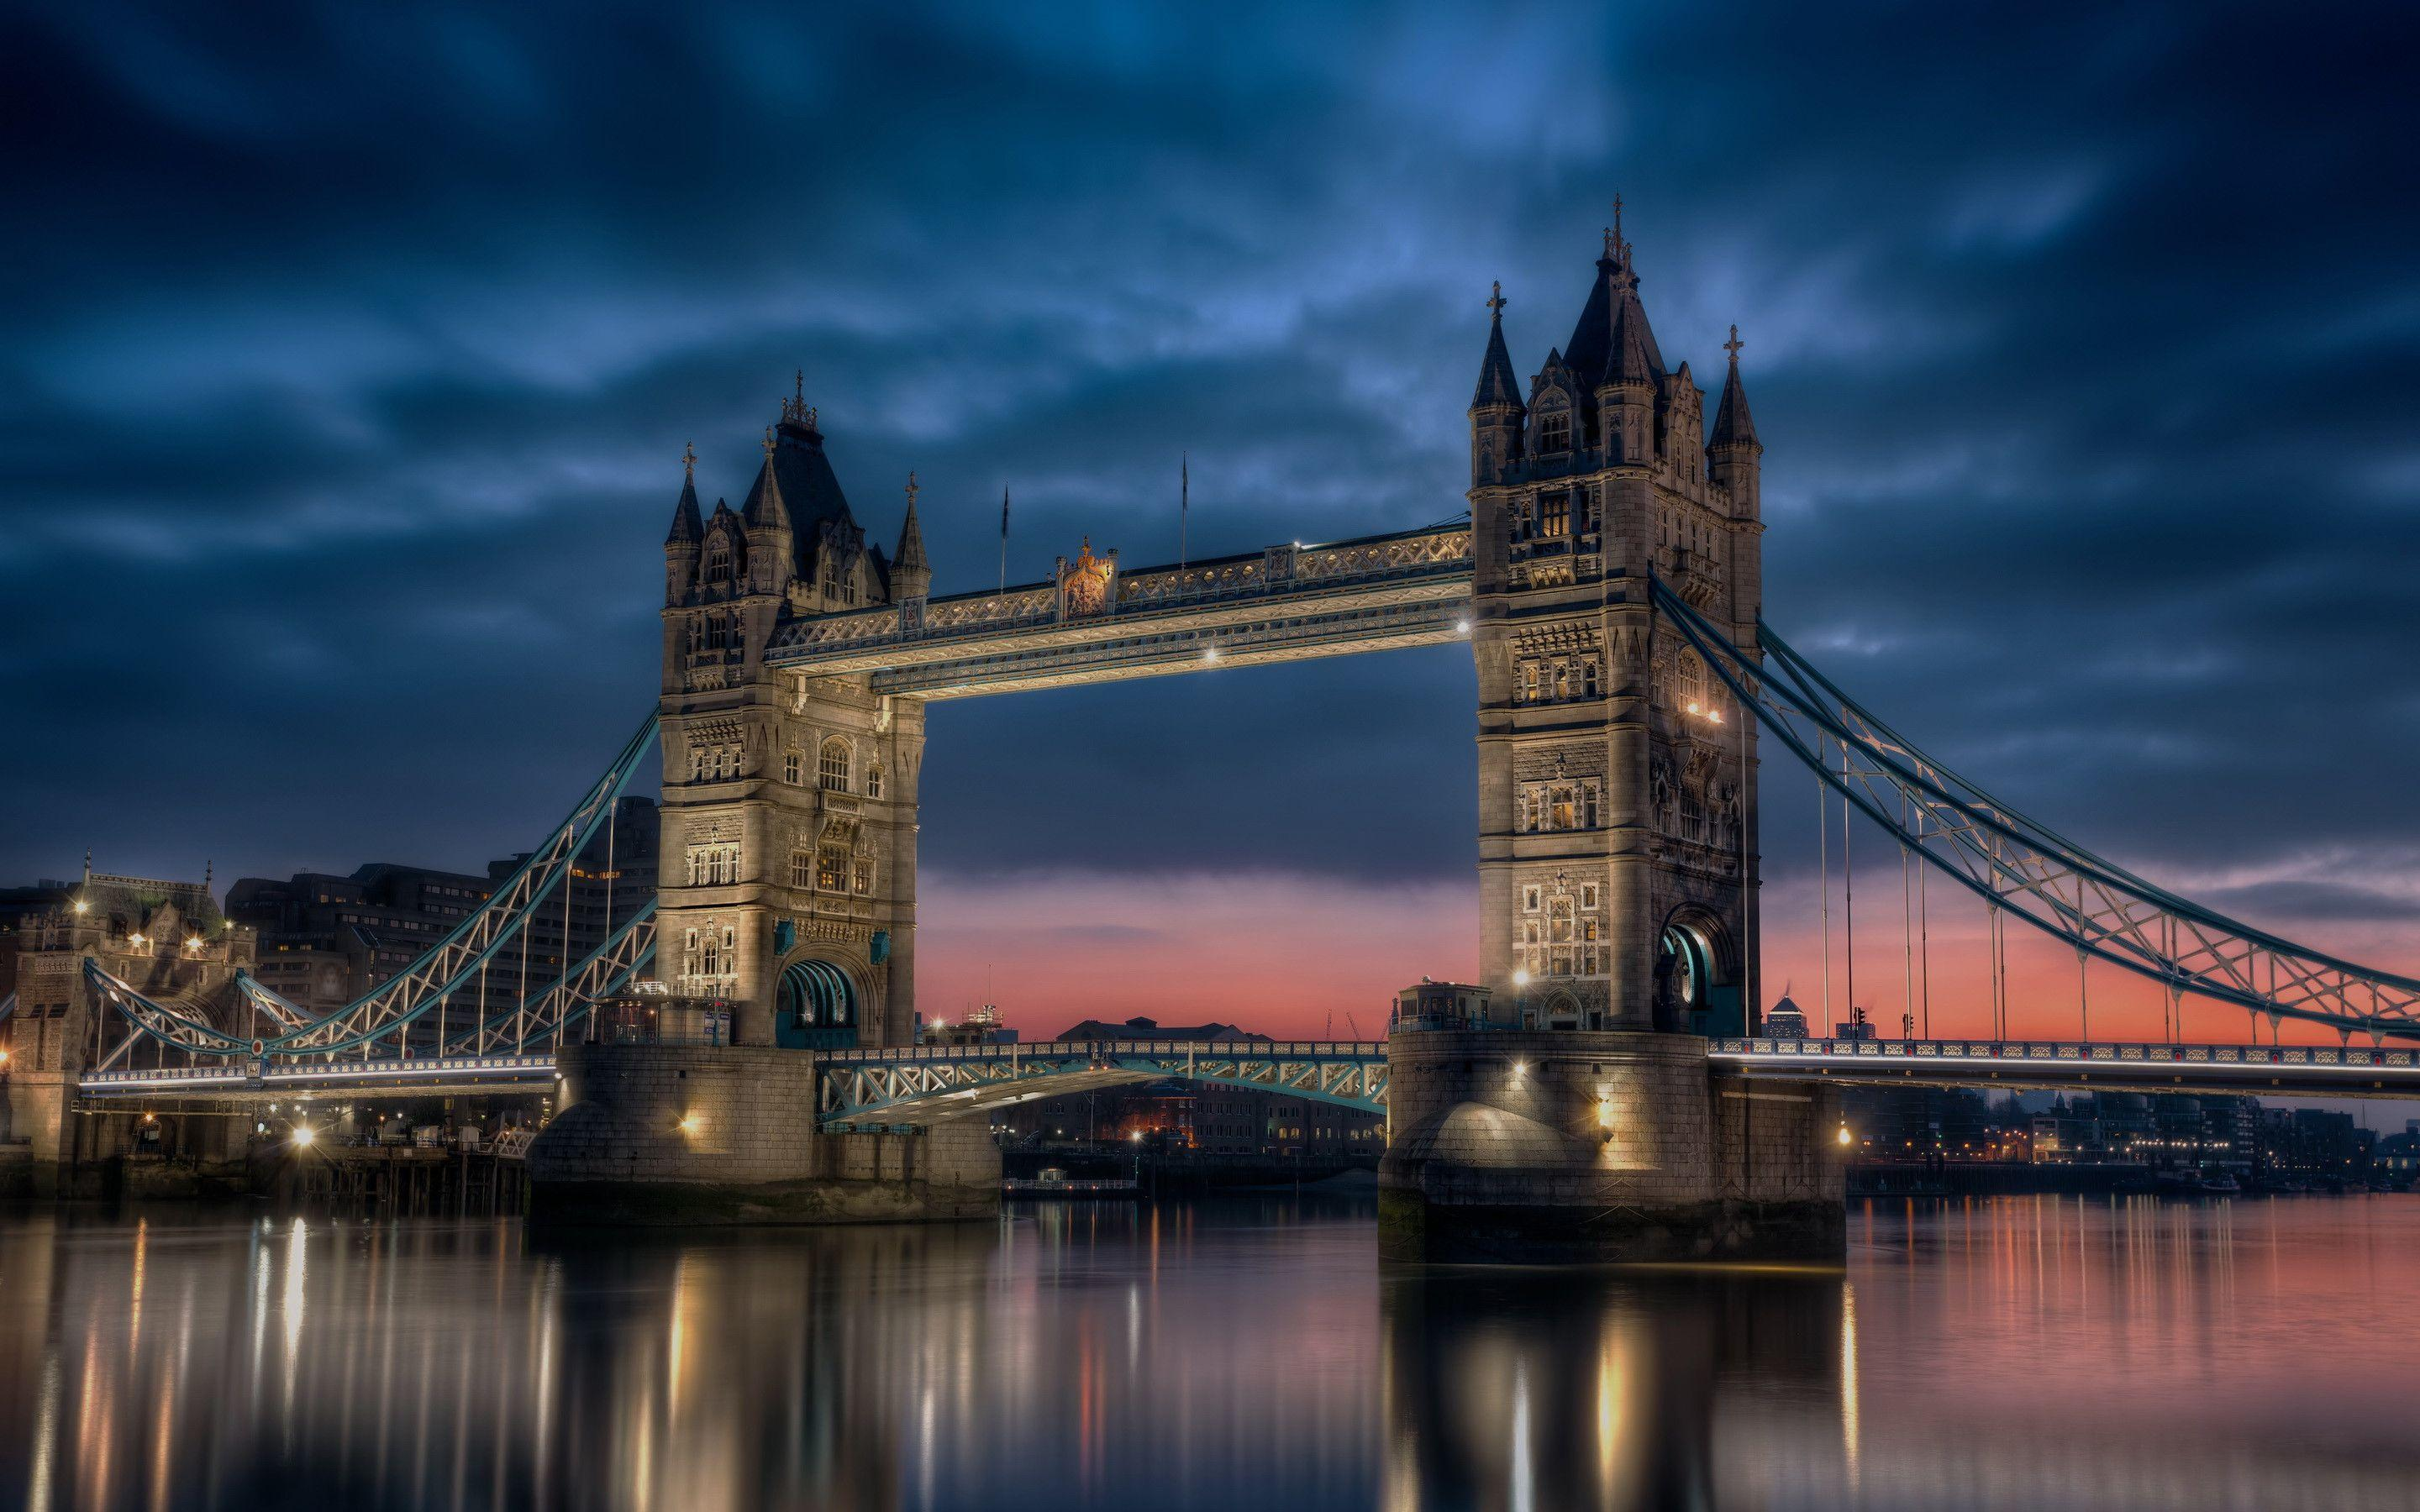 London 4k Wallpapers For Your Desktop Or Mobile Screen Free And Easy To Download